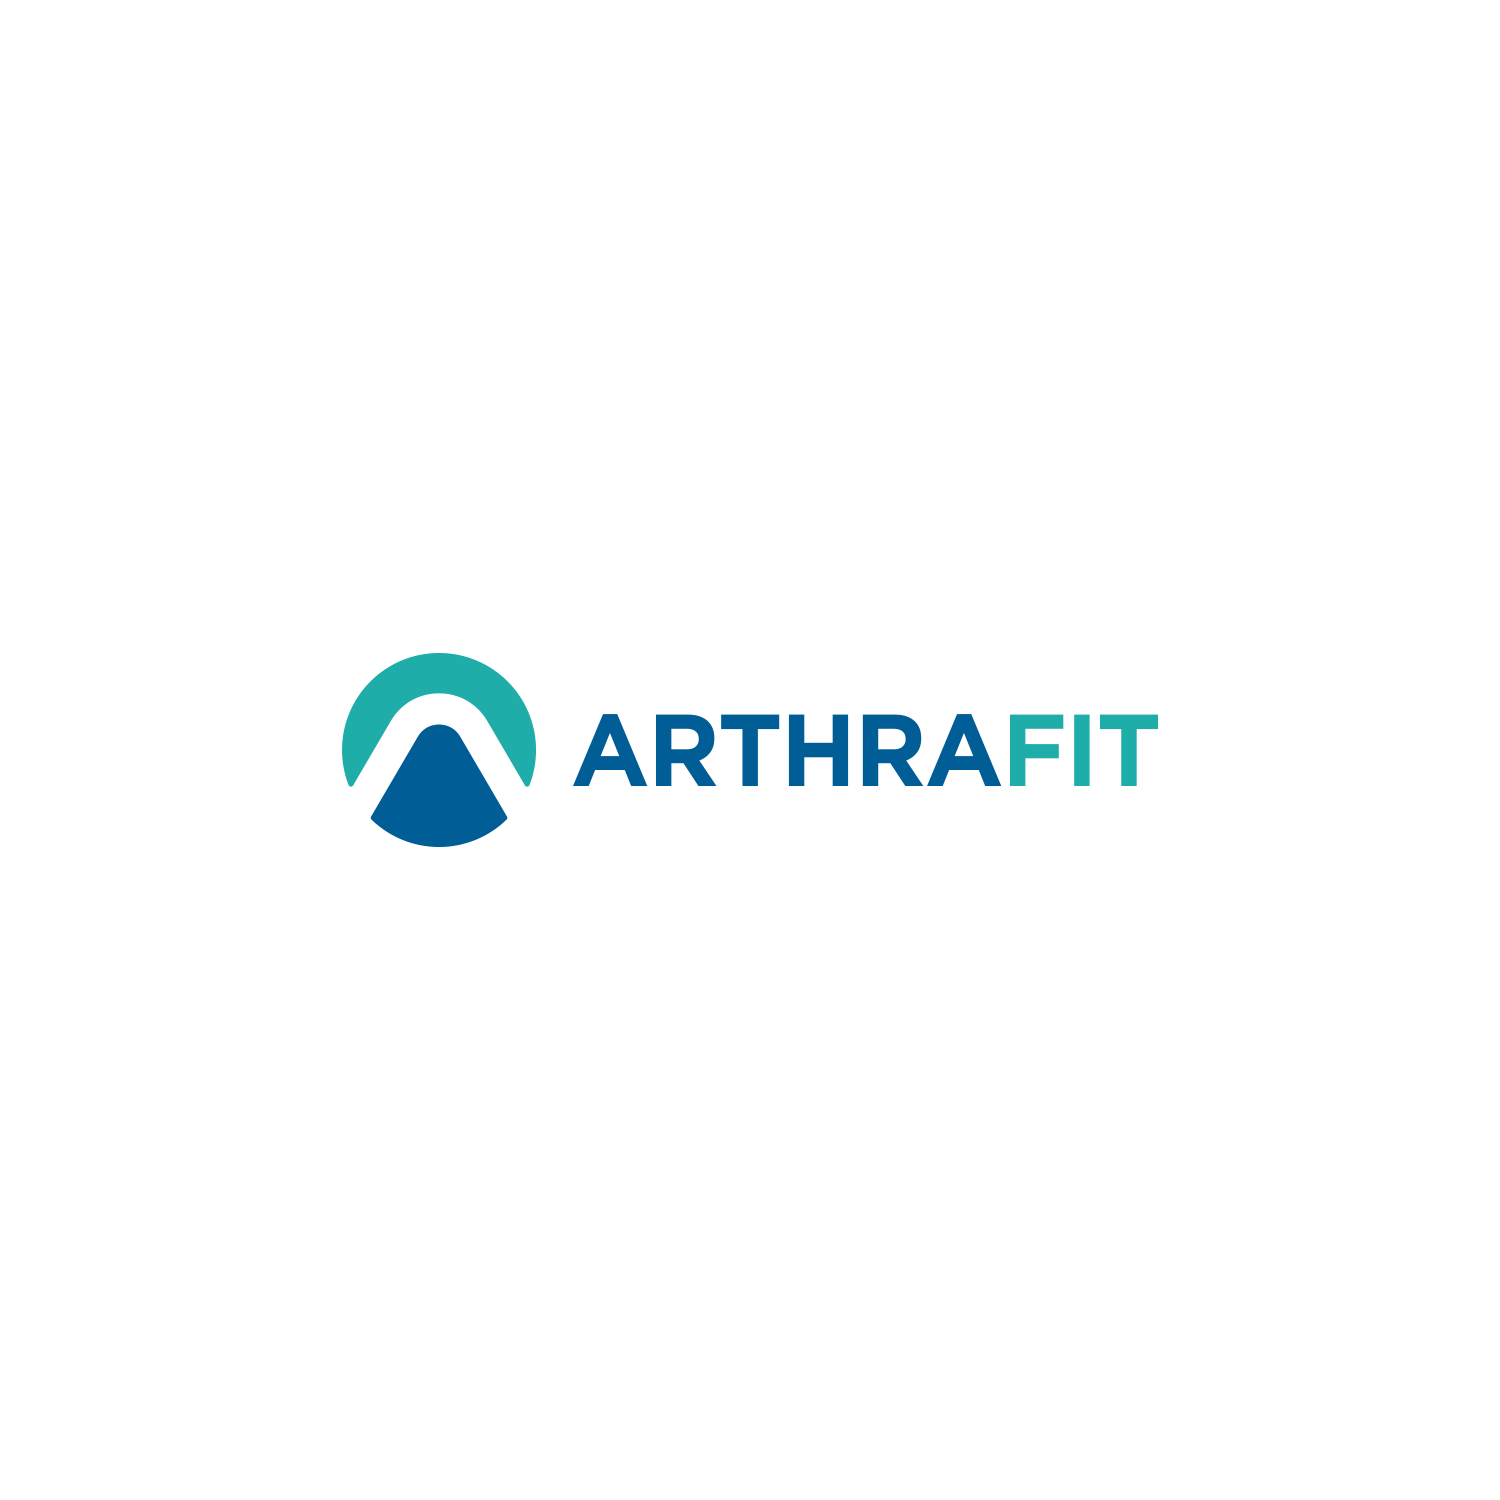 Modern / Clean Logo design for orthopedic surgery company